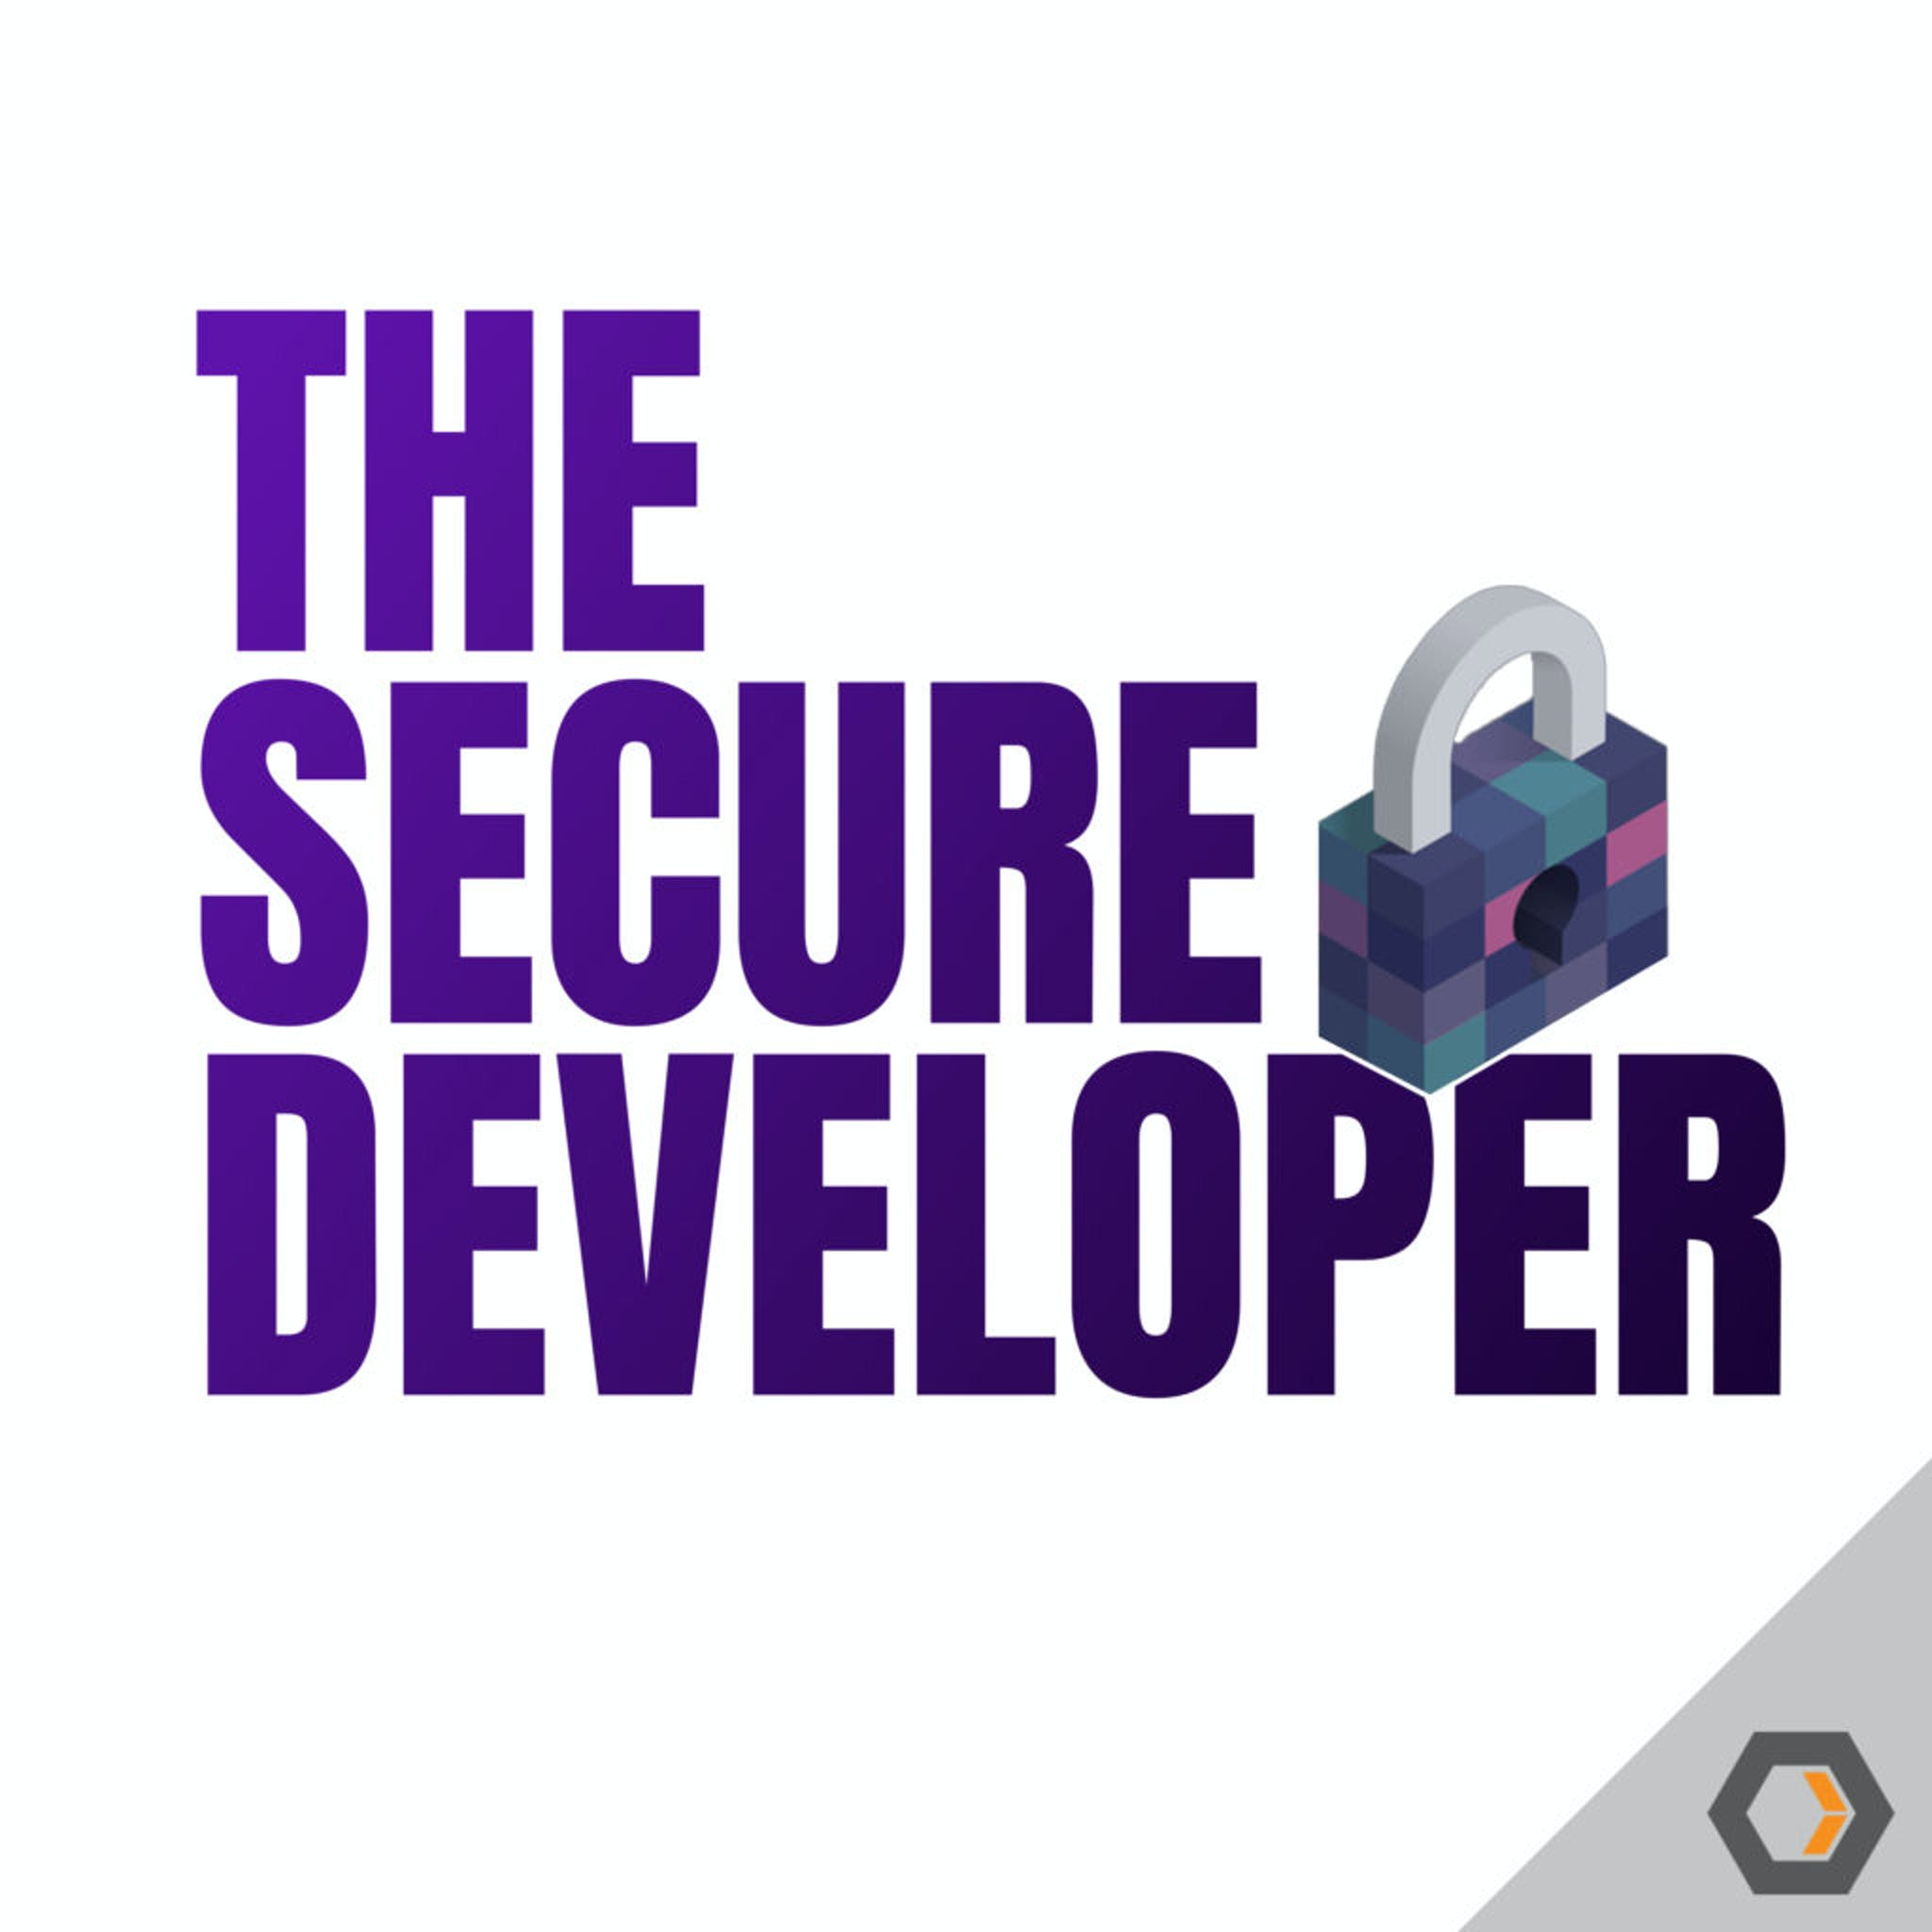 THE SECURE DEVELOPER logo